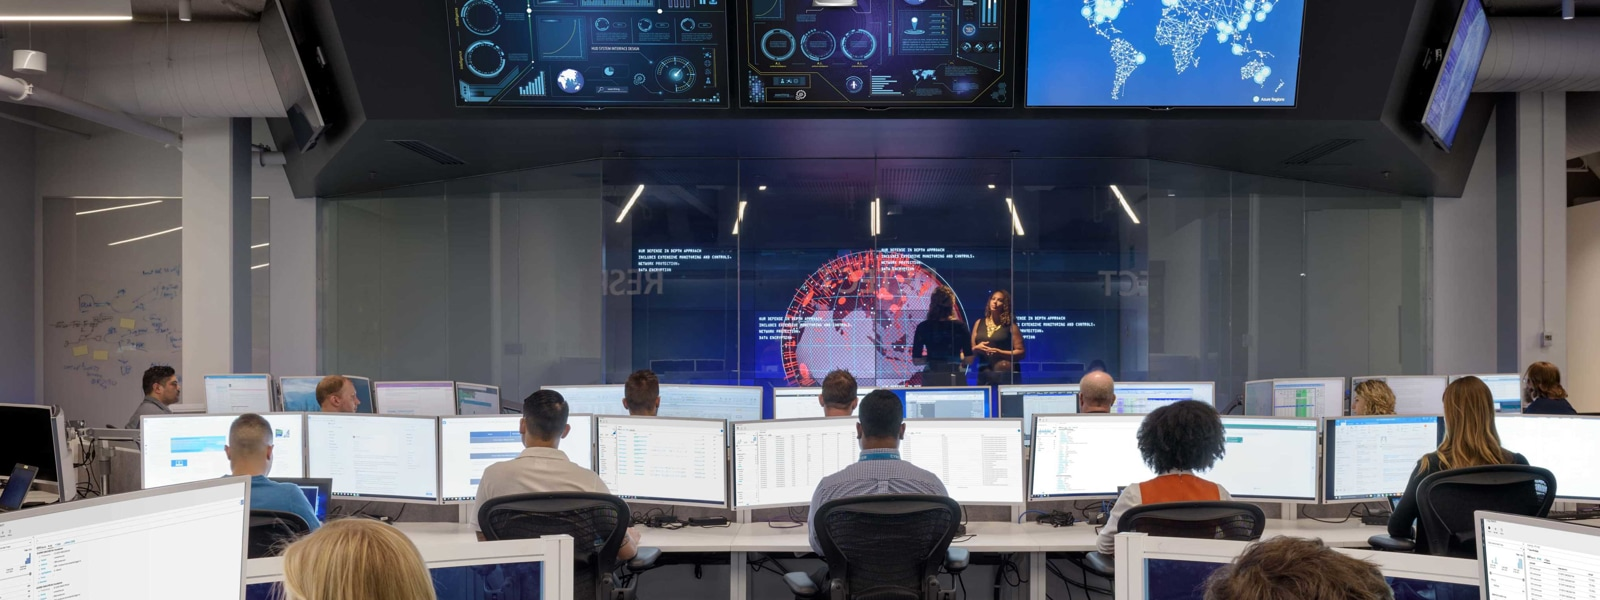 View from inside the Microsoft Cyber Defense Operations Center. People sit at shared desks looking at large desktop monitors. Multiple display monitors are positioned above them at the center of the room, showing various charts and maps.